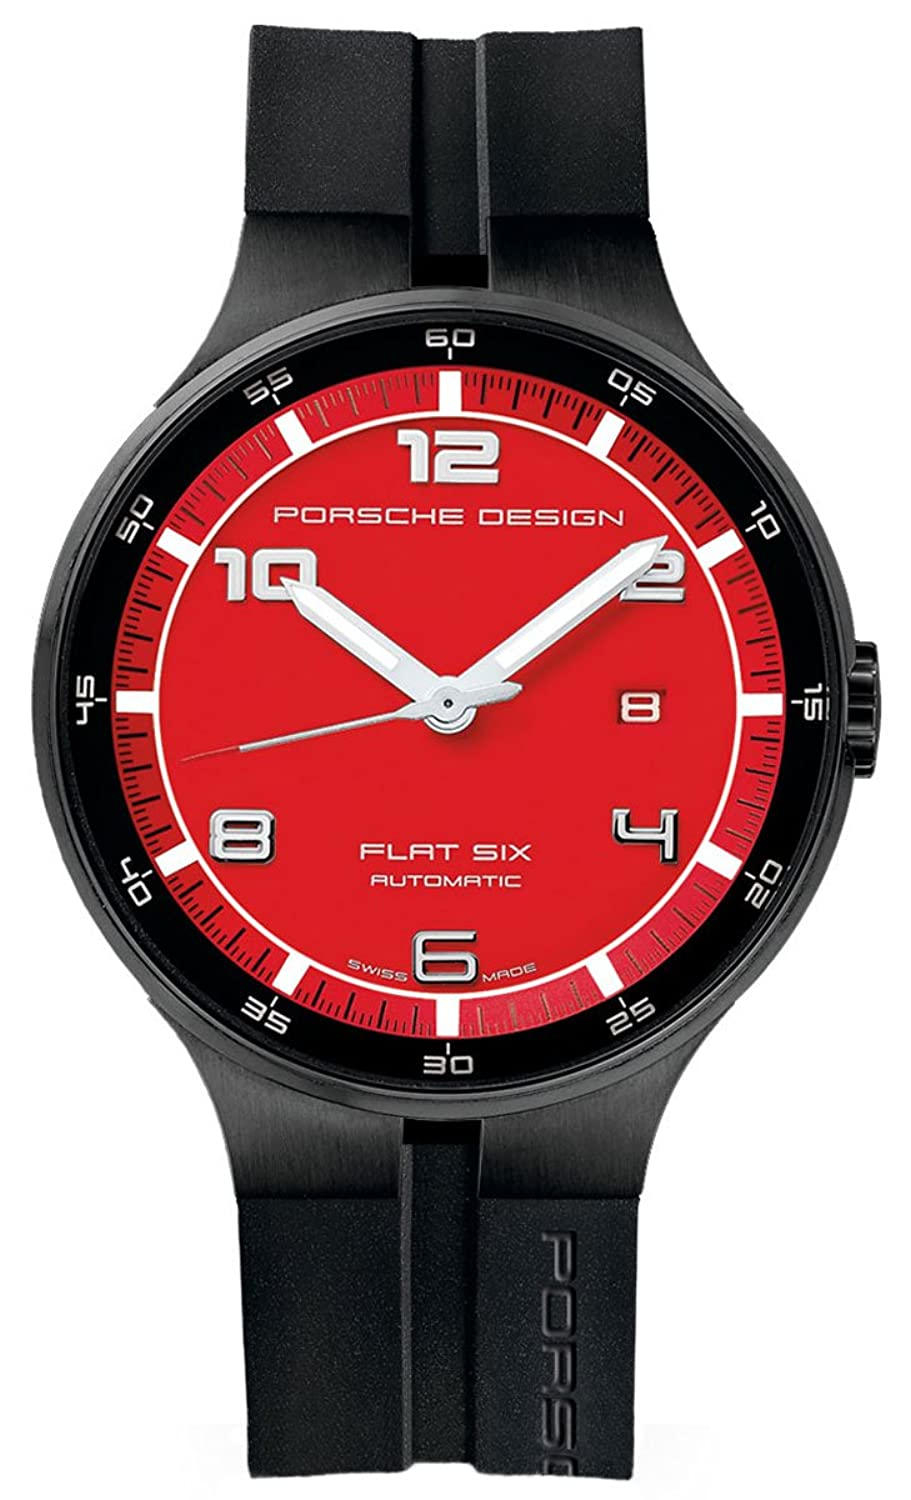 Porsche Design Flat Six Automatic Black PVD Steel Mens Watch Calendar Red Dial 6350.43.74.1254